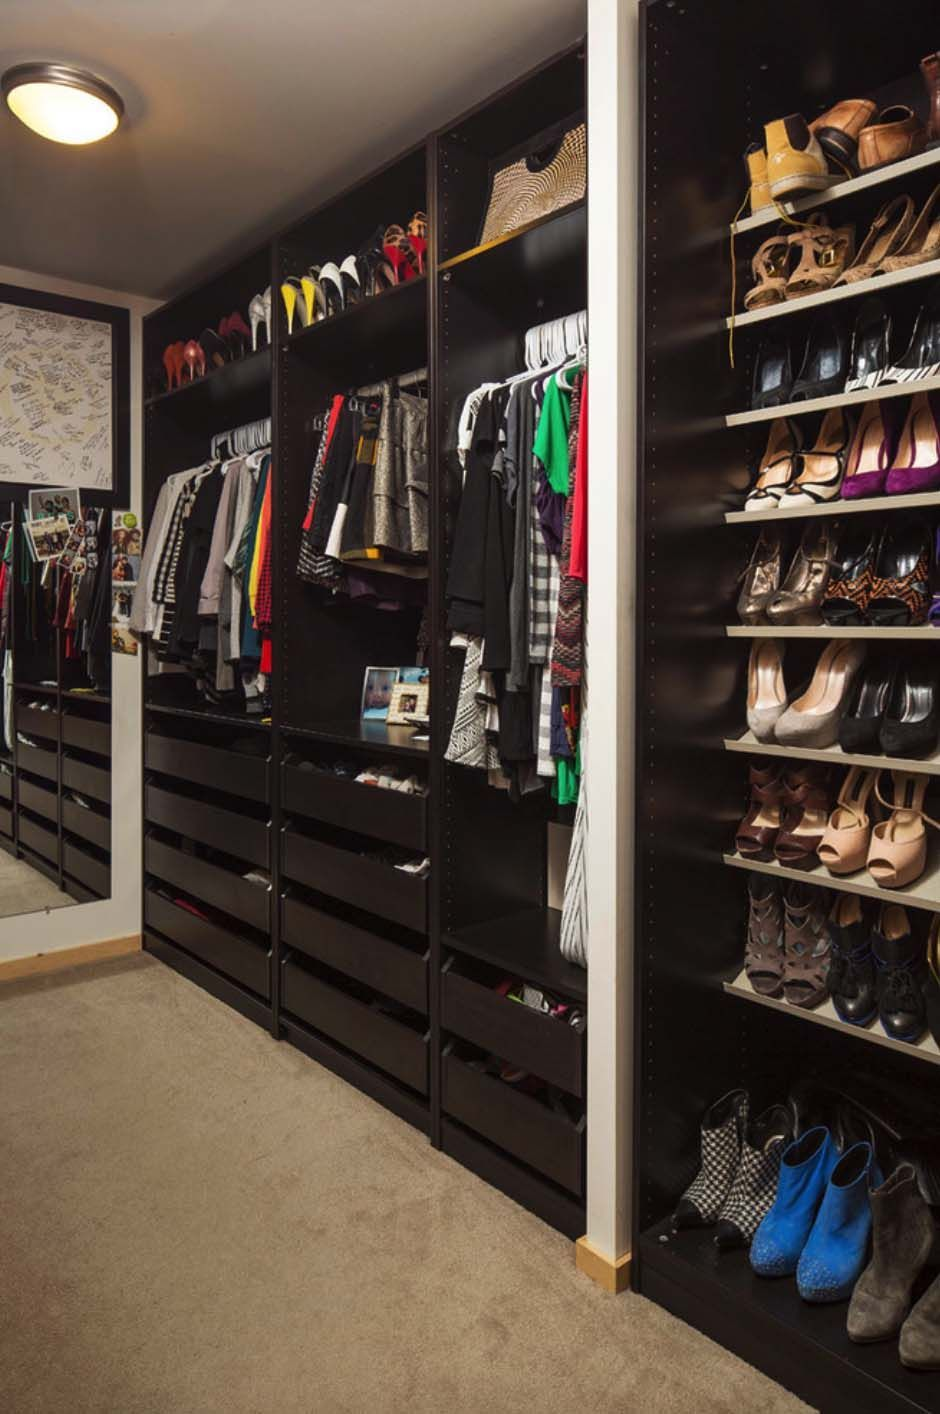 Love The Rich Cabinetry In This Custom Closet With The Raised Shoe Shelves.  #ShoeStorage